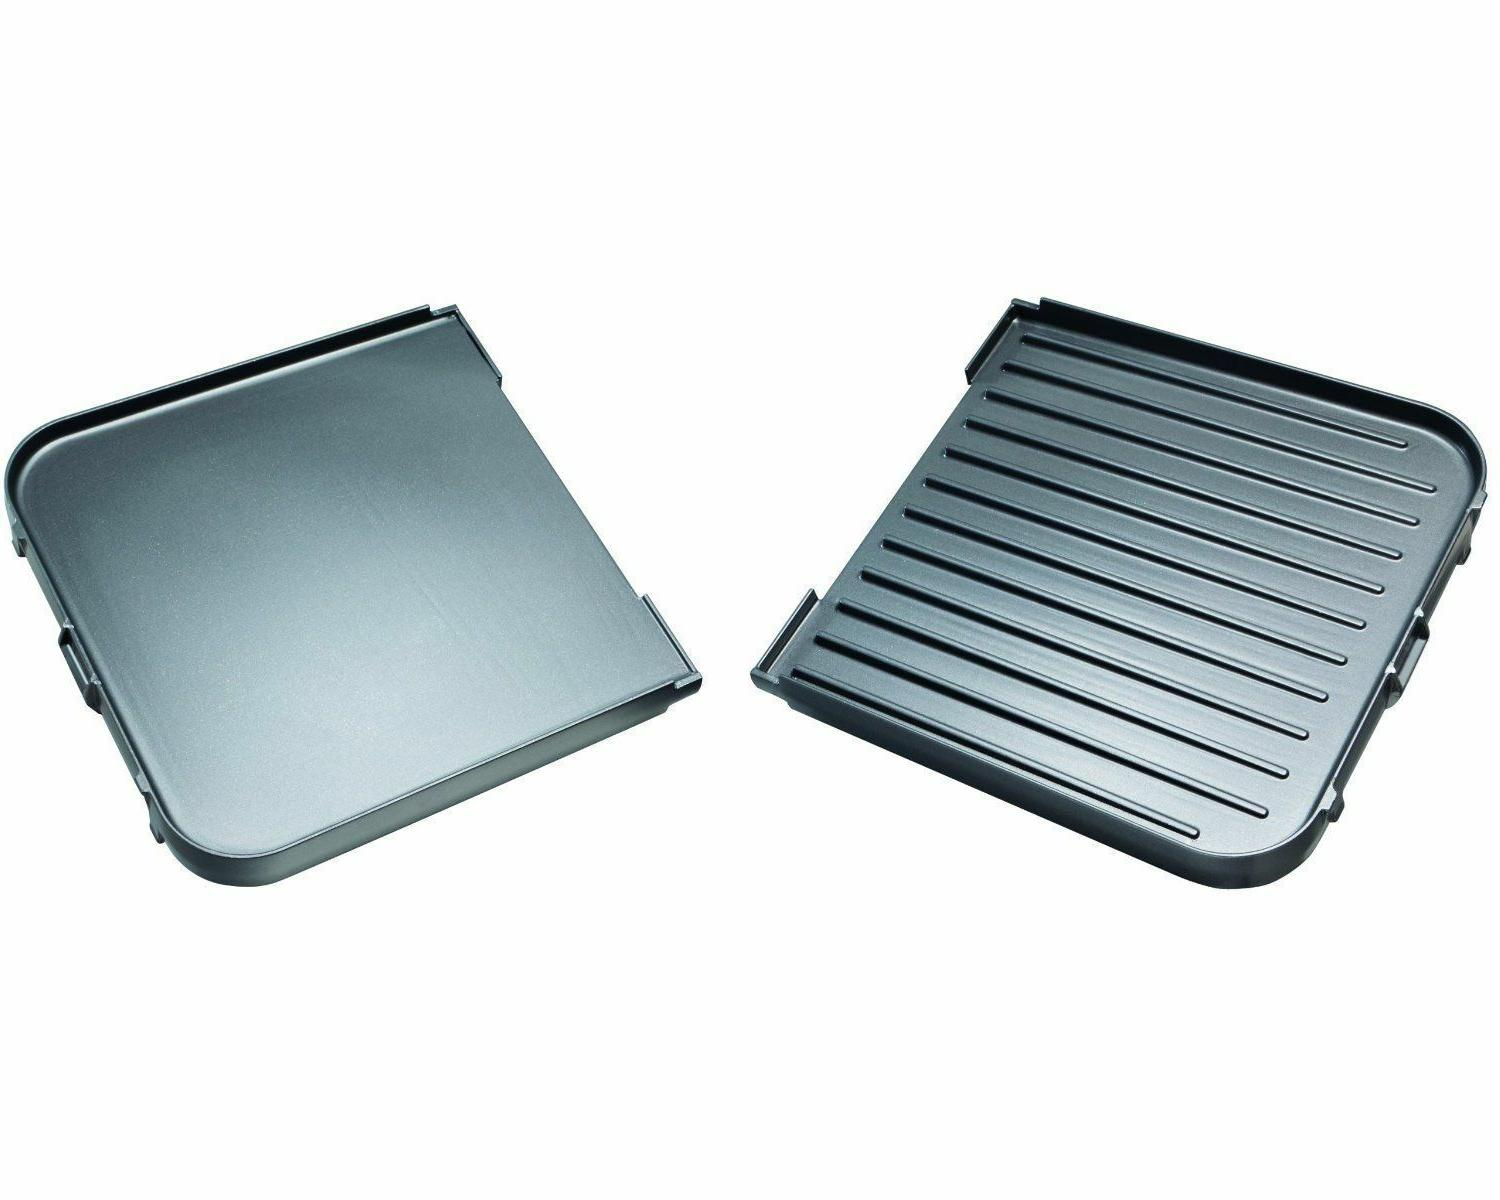 Indoor Griddle Smokeless Countertop Two Plate